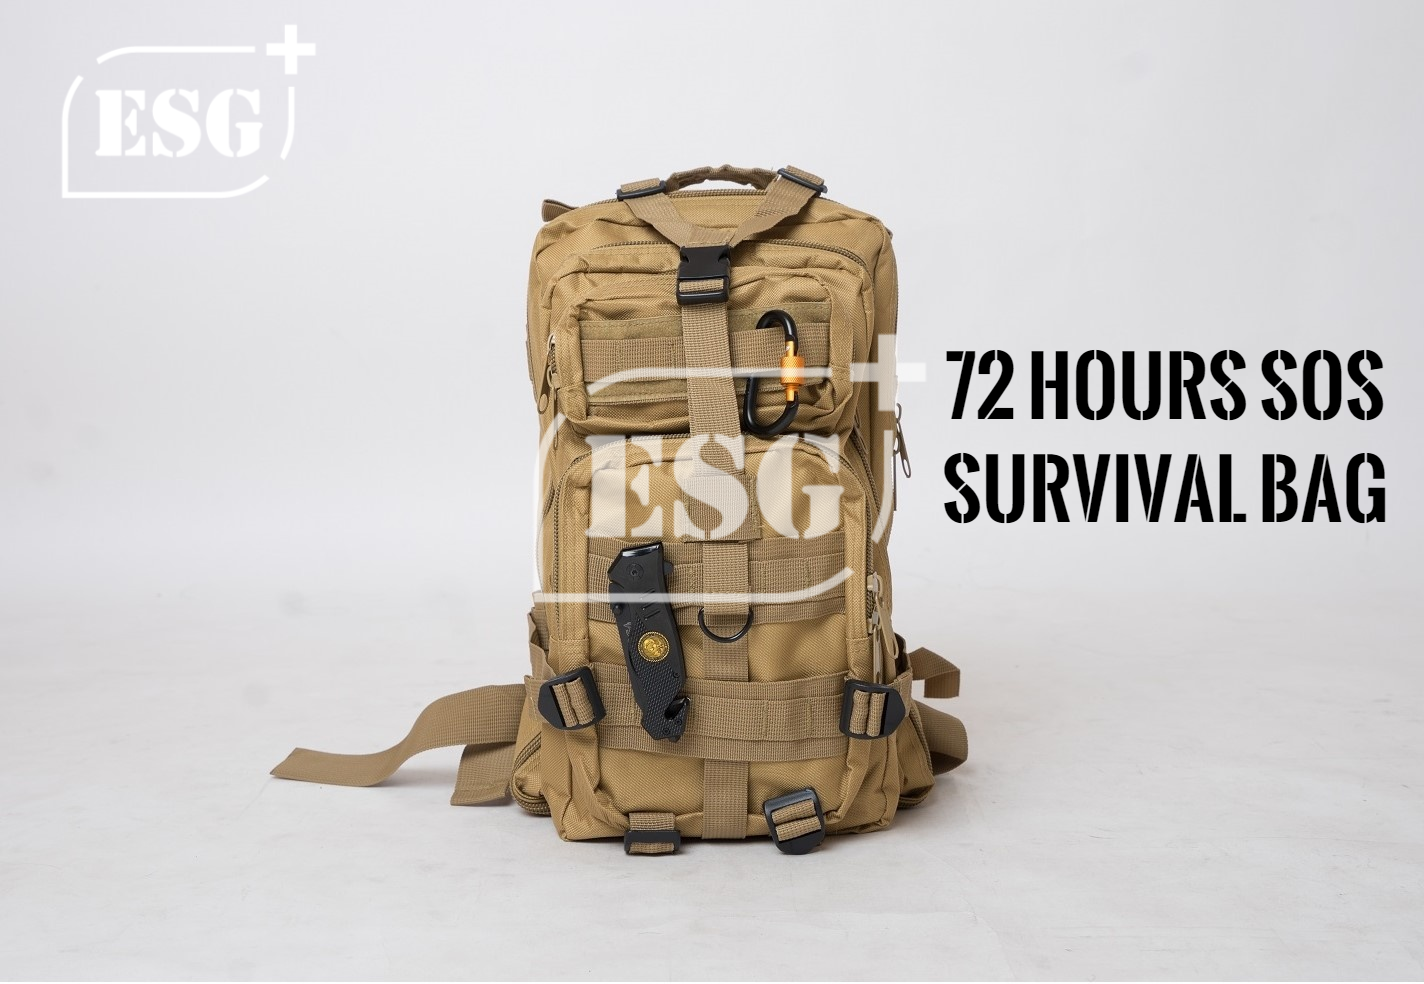 72 Hour SOS Survival Bag